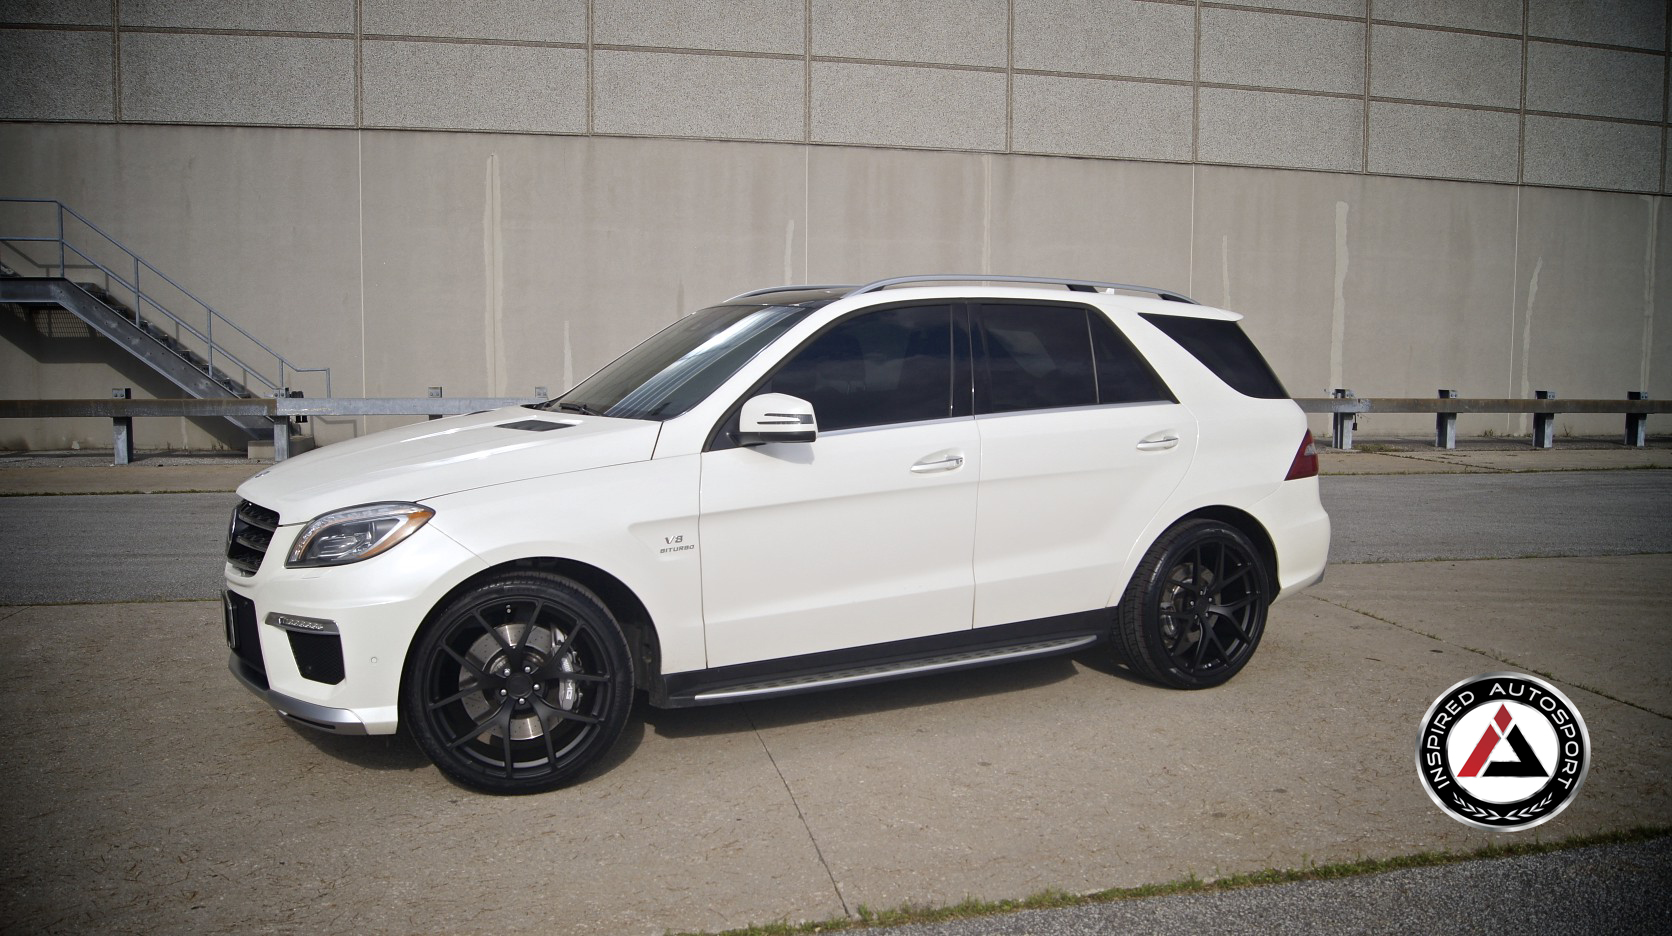 ML 63 AMG on PUR Wheels by Inspired Autosport - autoevolution